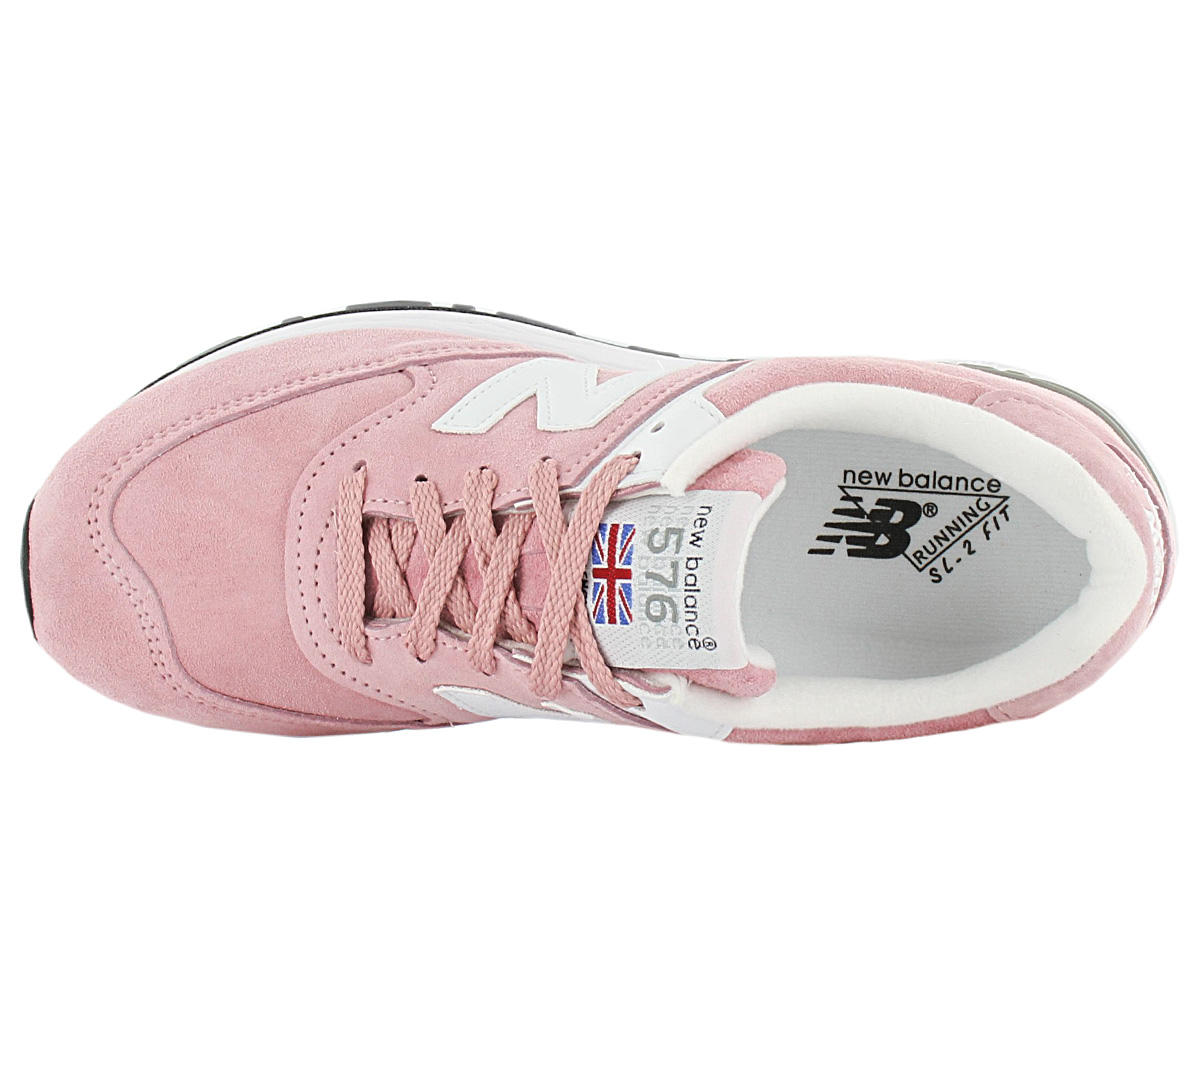 free shipping 34c98 aa689 Details about New Balance 576 - Made in England - W576PNK Women's Sneakers  Leather Shoes